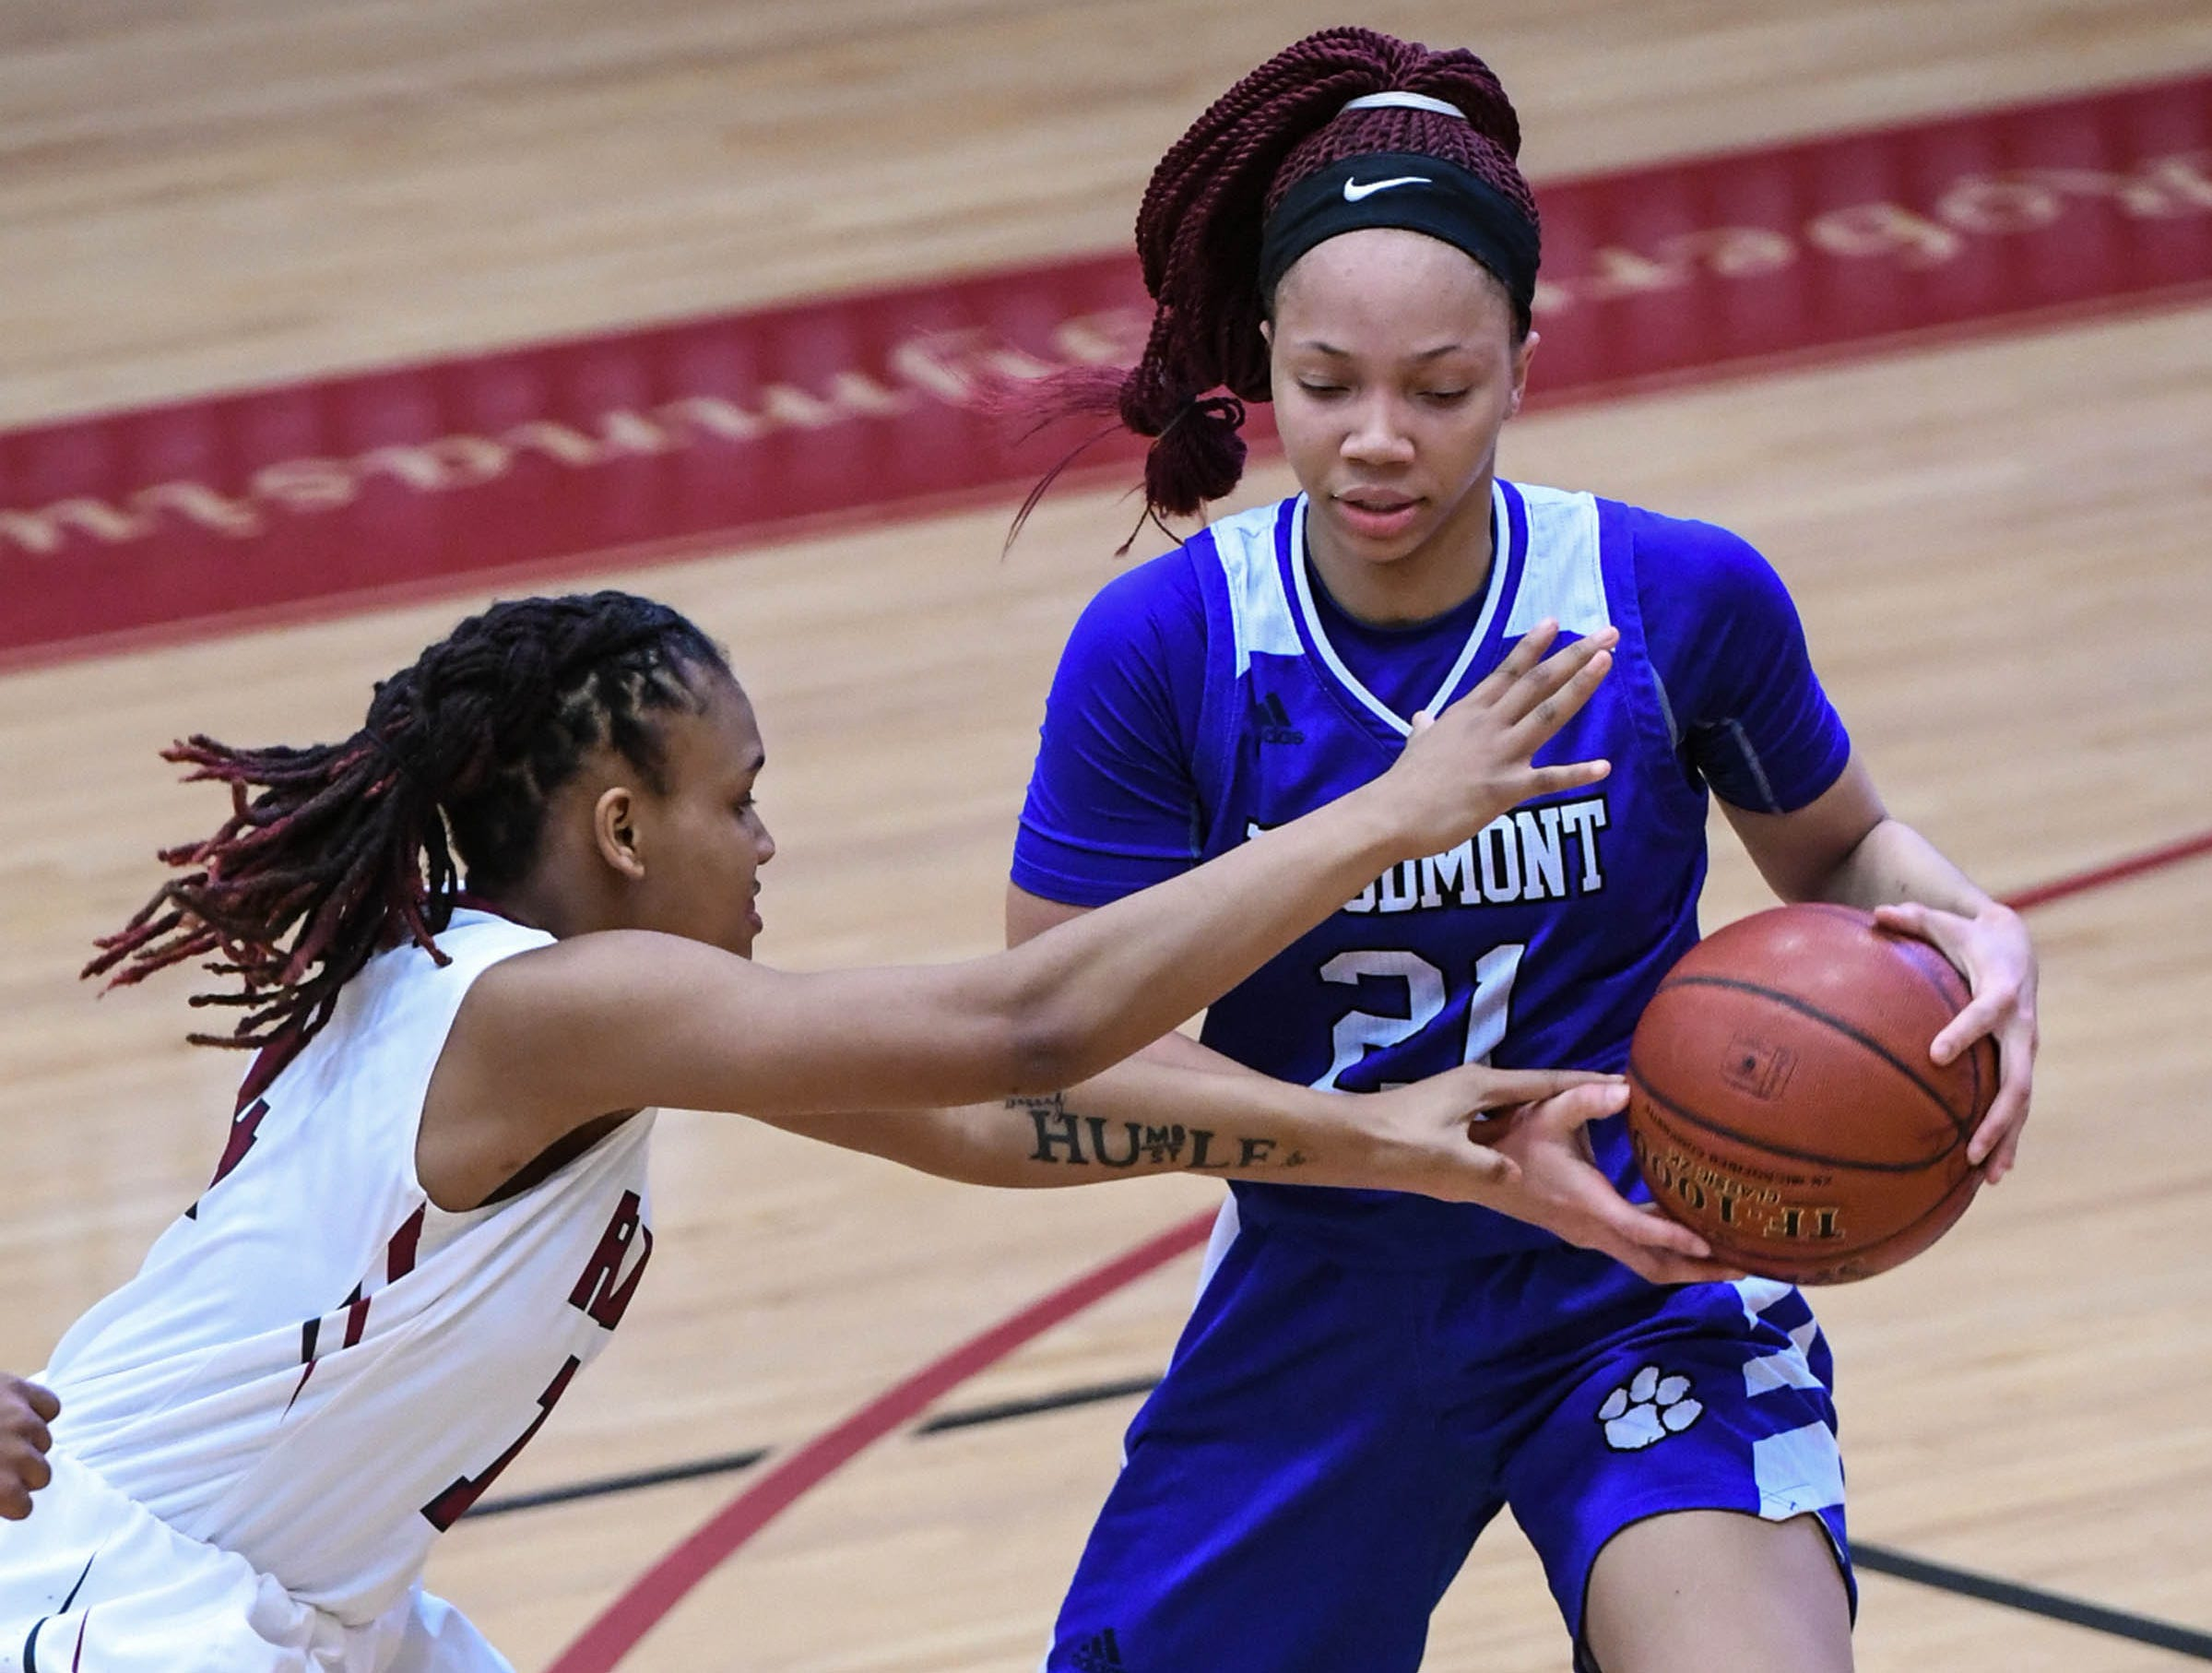 Woodmont junior Sydney Wyatt(21) dribbles near Westside junior Tatyana Lewis(14) during the first quarter at Westside High School in Anderson on Tuesday.